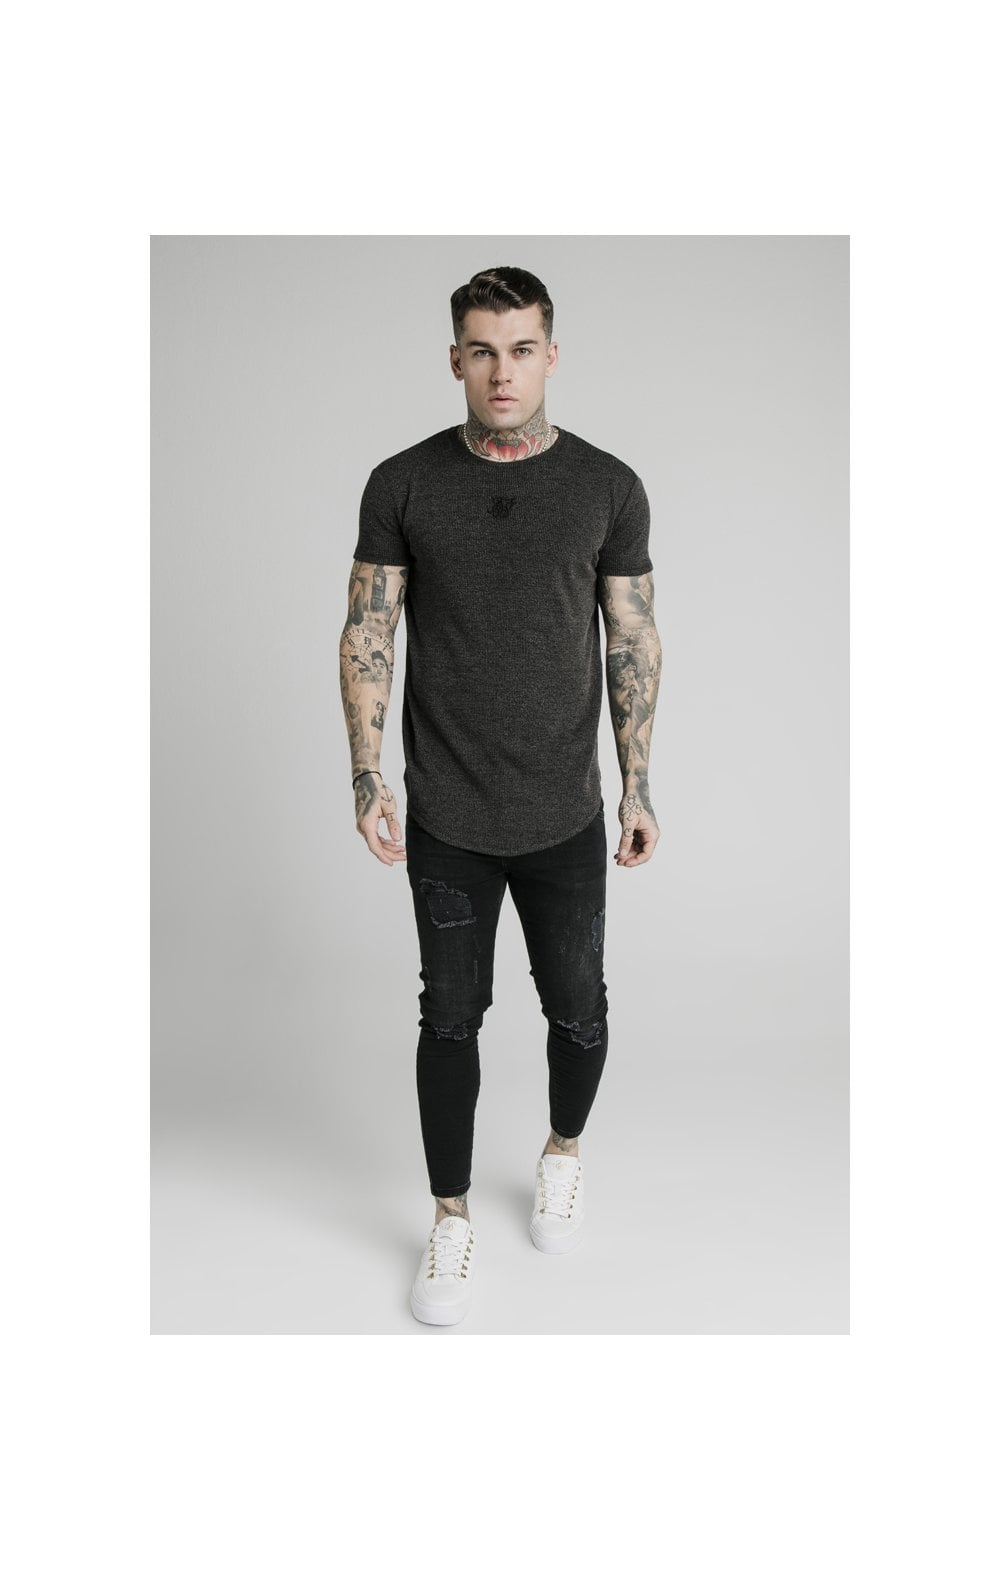 Load image into Gallery viewer, SikSilk Rib Knit Gym Tee - Black (3)